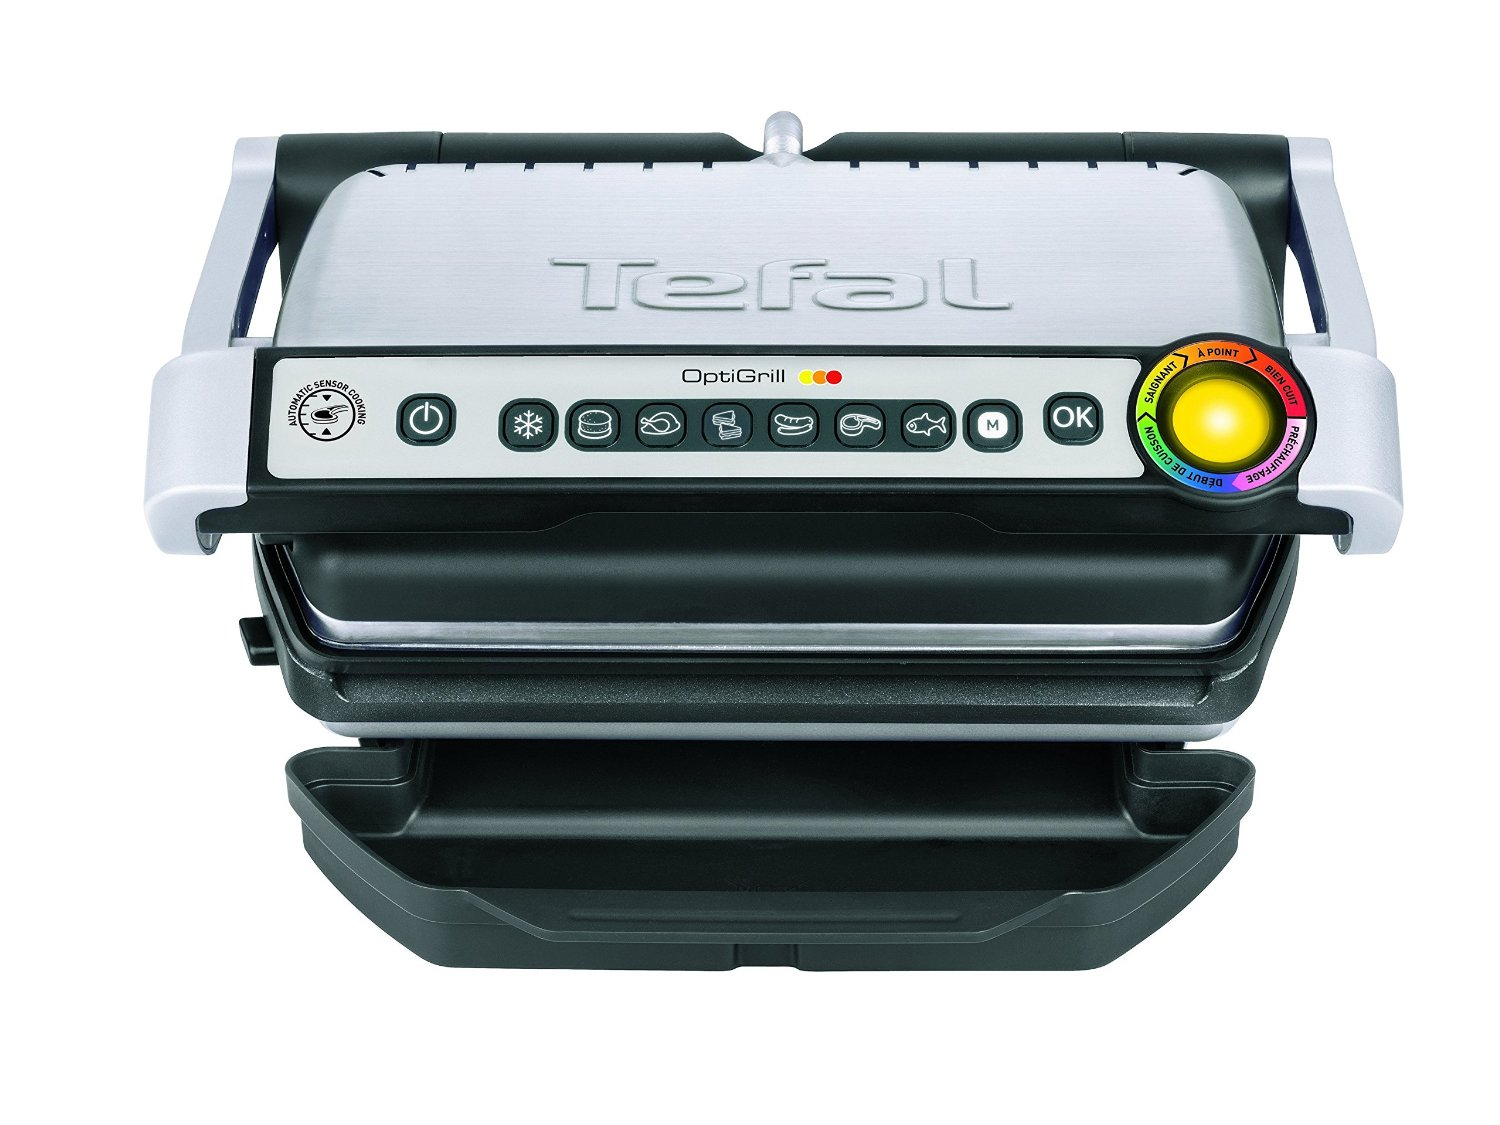 tefal gc722d optigrill plus xl 2000 w edelstahl grill. Black Bedroom Furniture Sets. Home Design Ideas